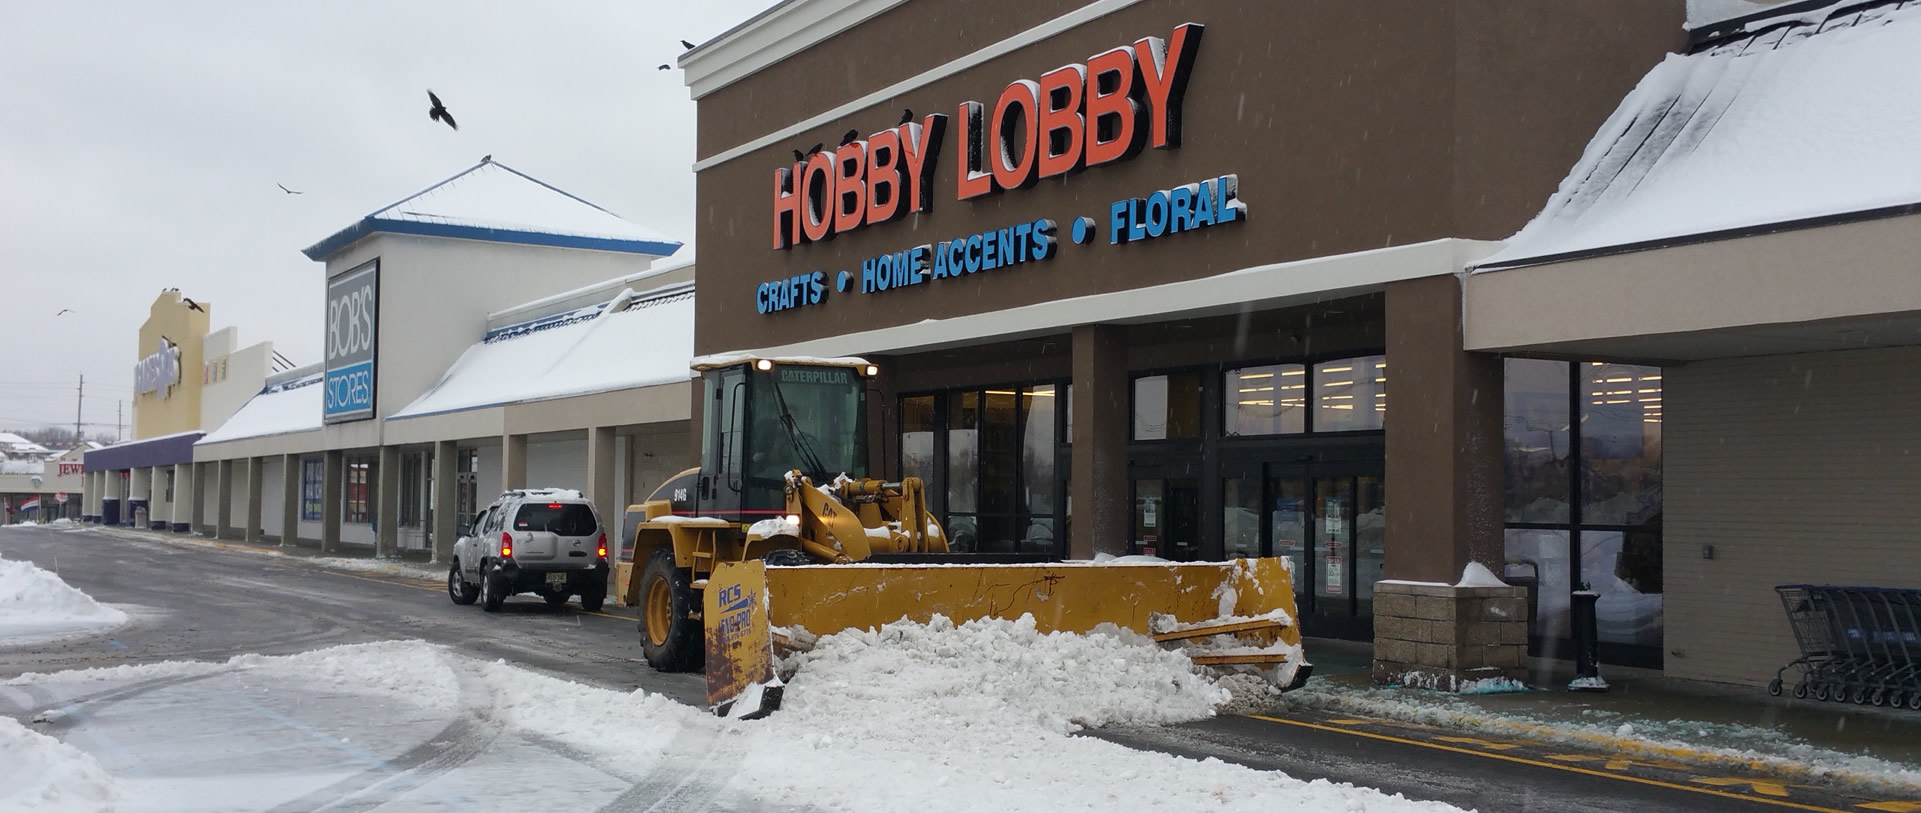 Snow Plowing in Hobby Lobby Parking Lot